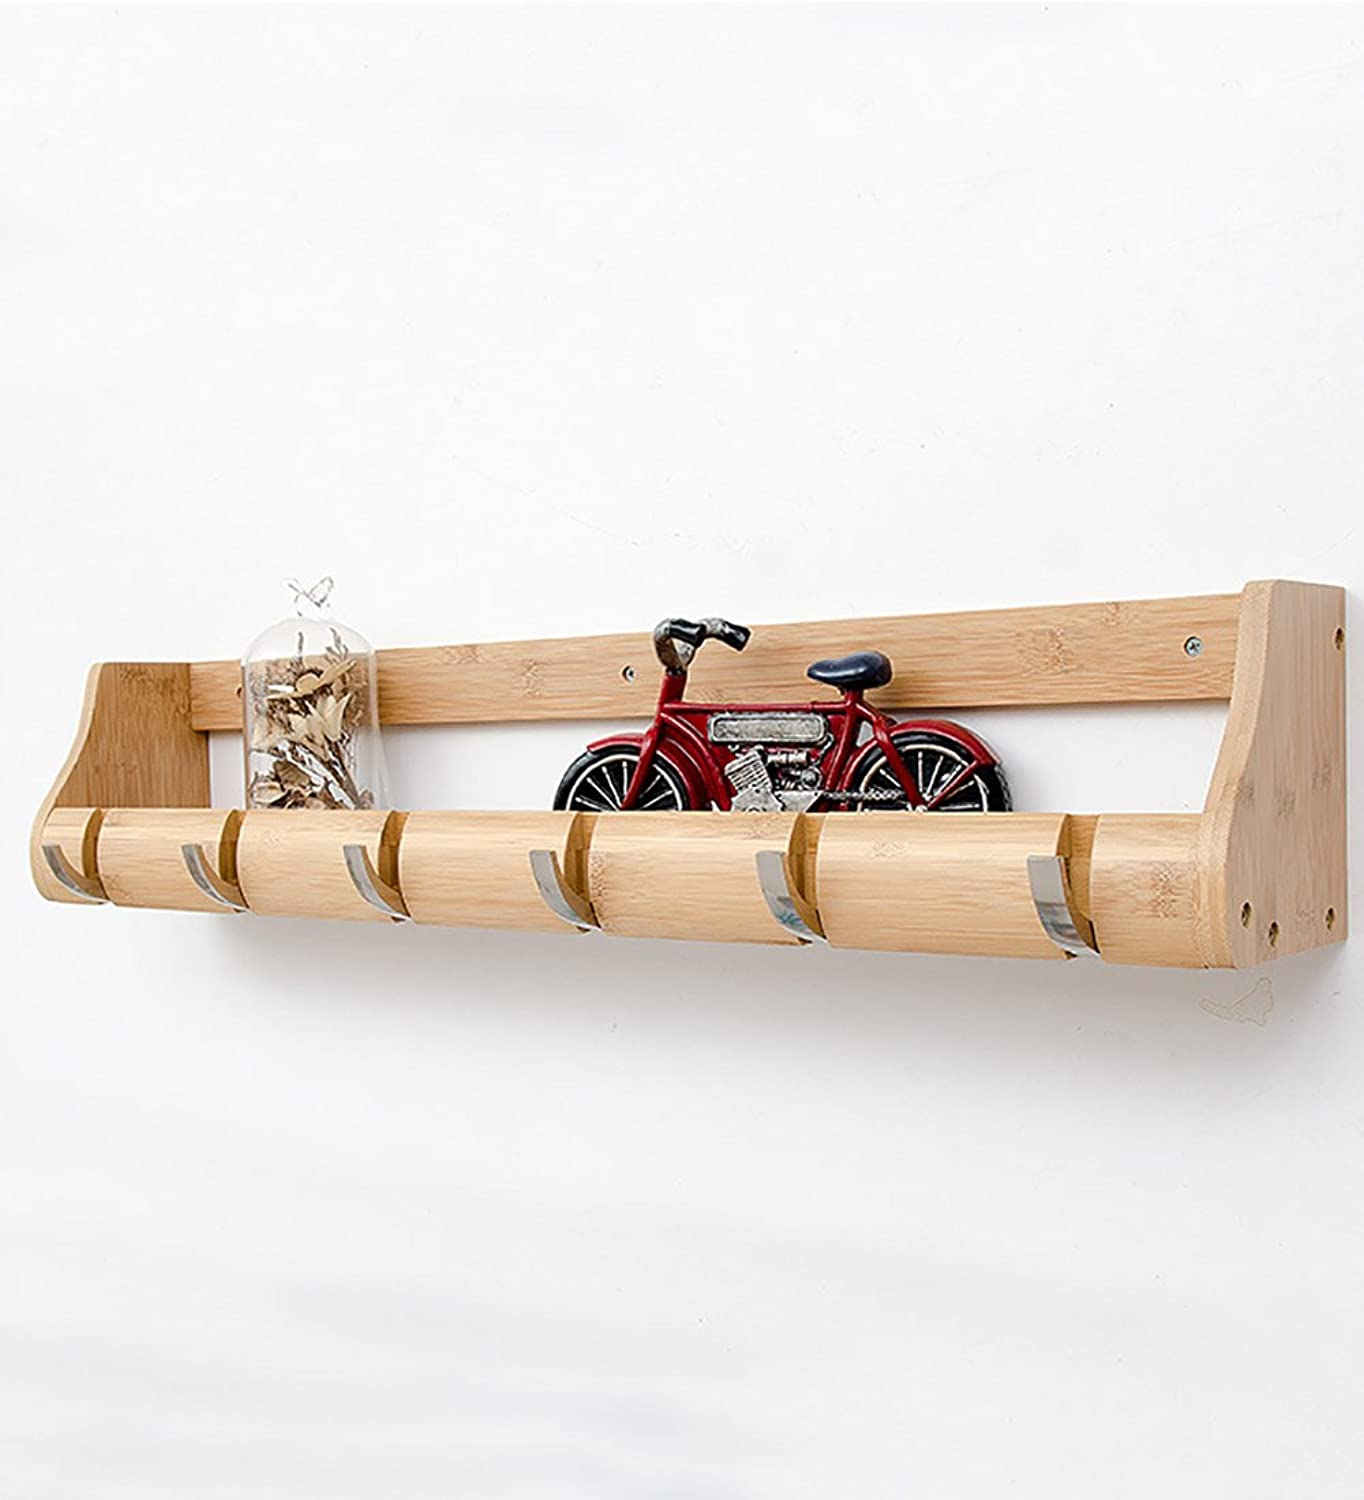 WUFENG Wall-mounted Coat Rack Bamboo Simple Shelf Metal Hook Available In 15 Styles High 14.5cm ( color   Natural 6 hooks )